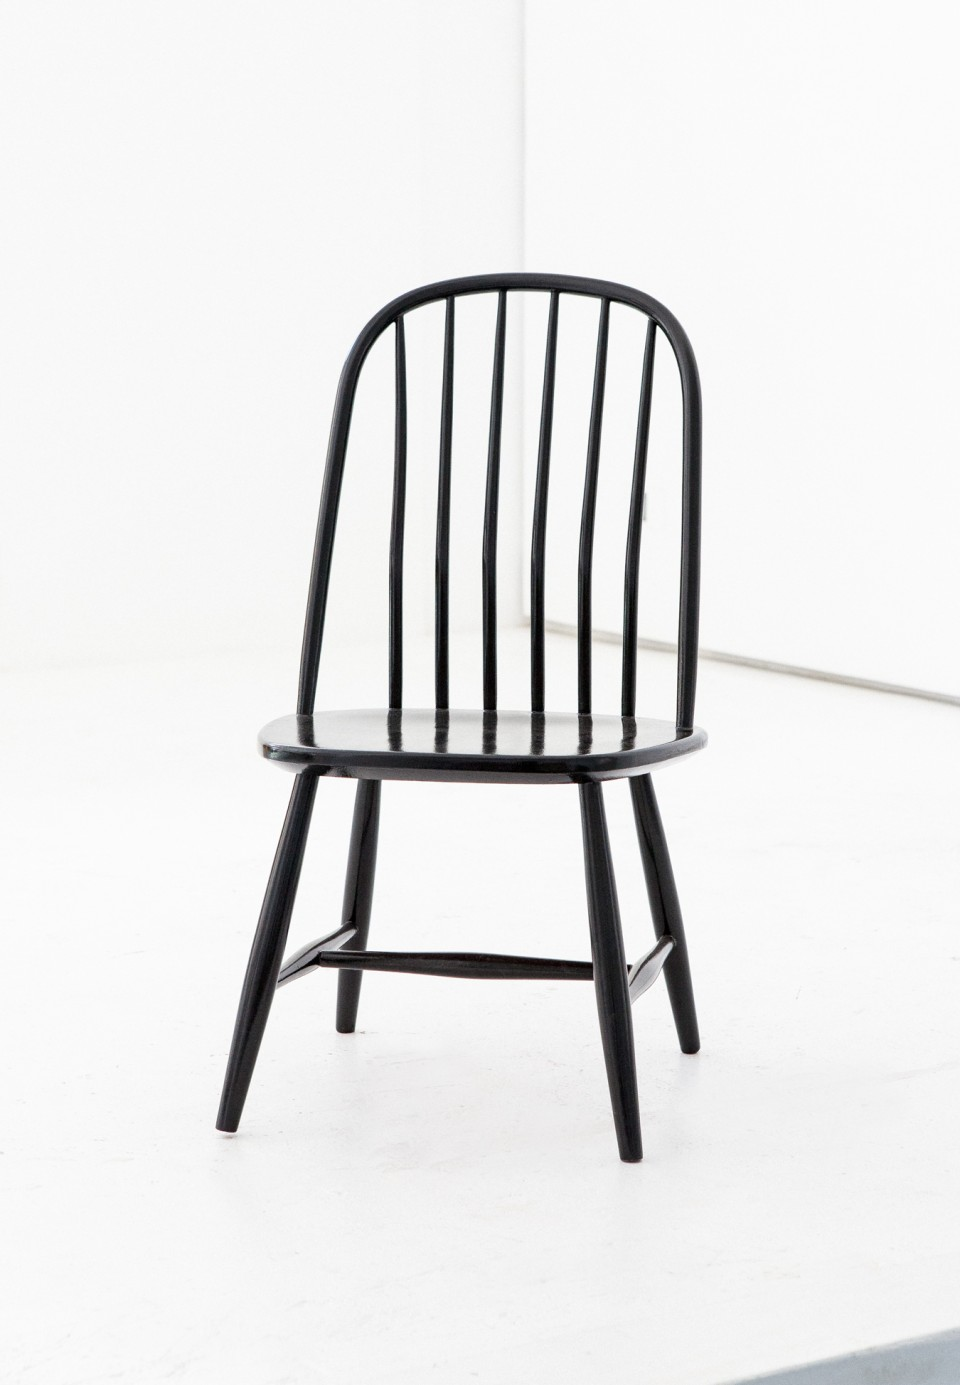 Six Swedish Black Dining Chairs by Bengt Akerblom and G. Eklöf, Sweden SE254